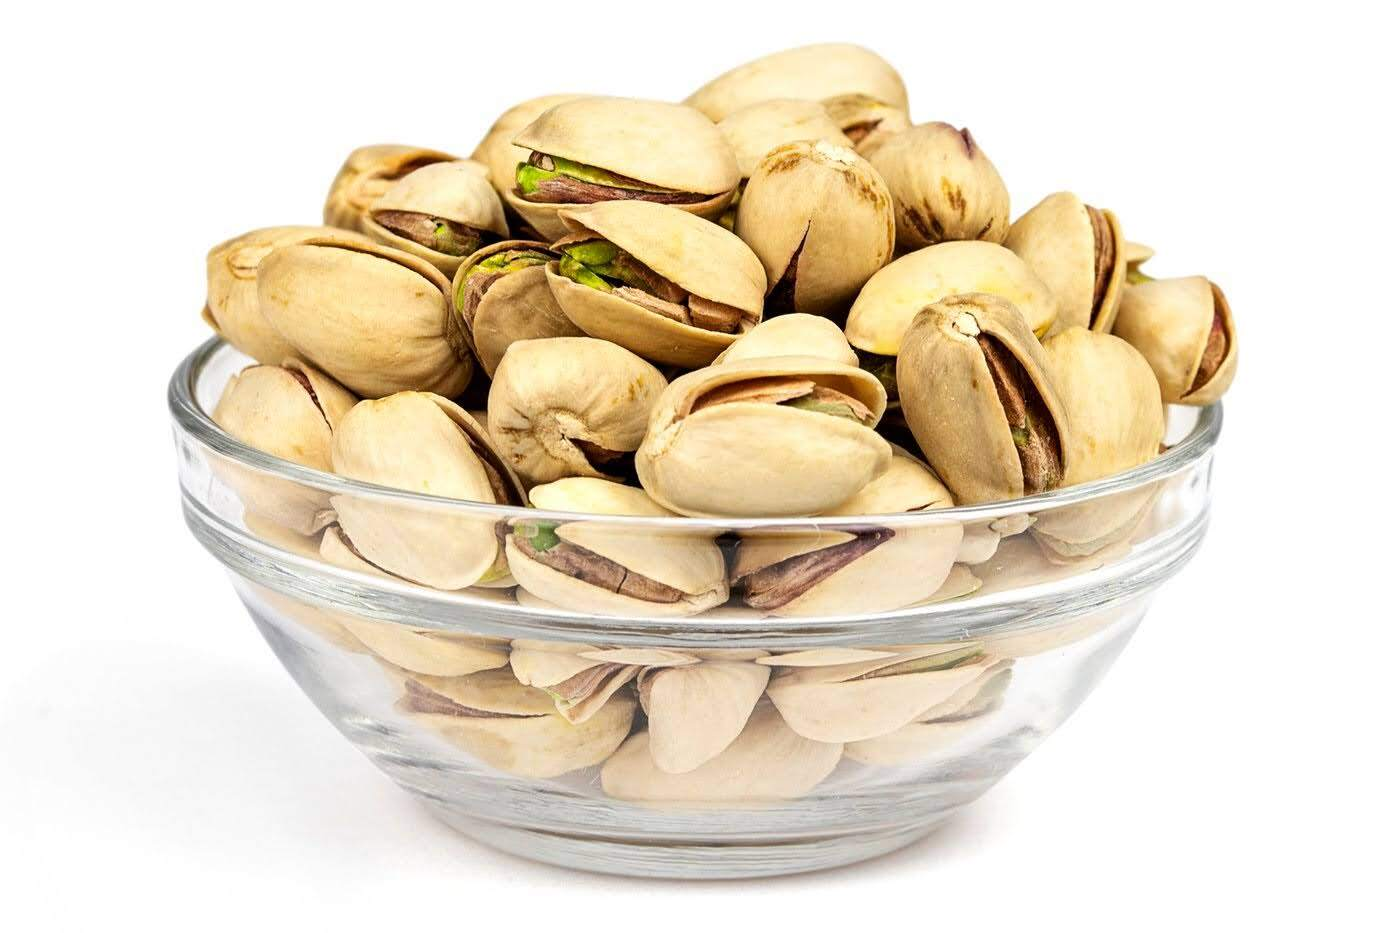 Roasted Pistachio Healthy 500g Lazada